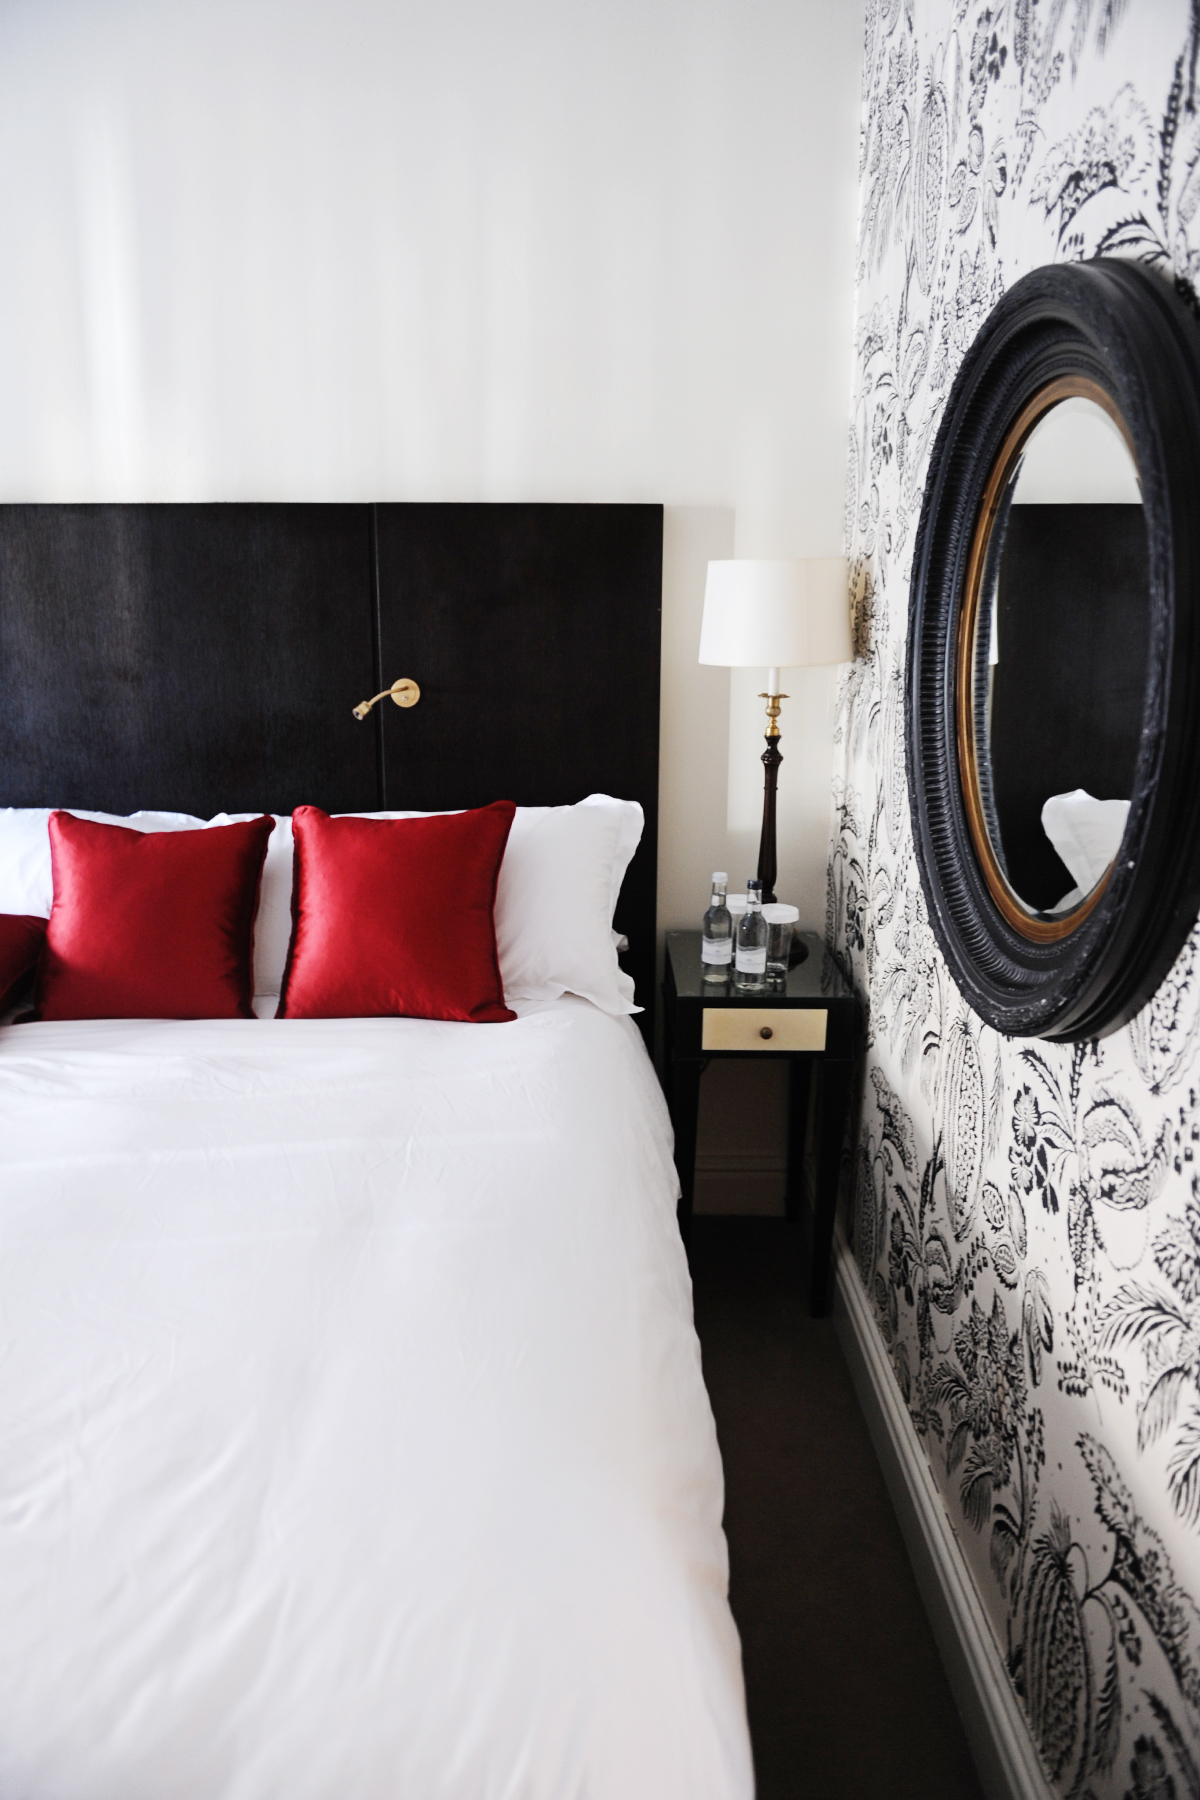 Hotels in london with family rooms 4